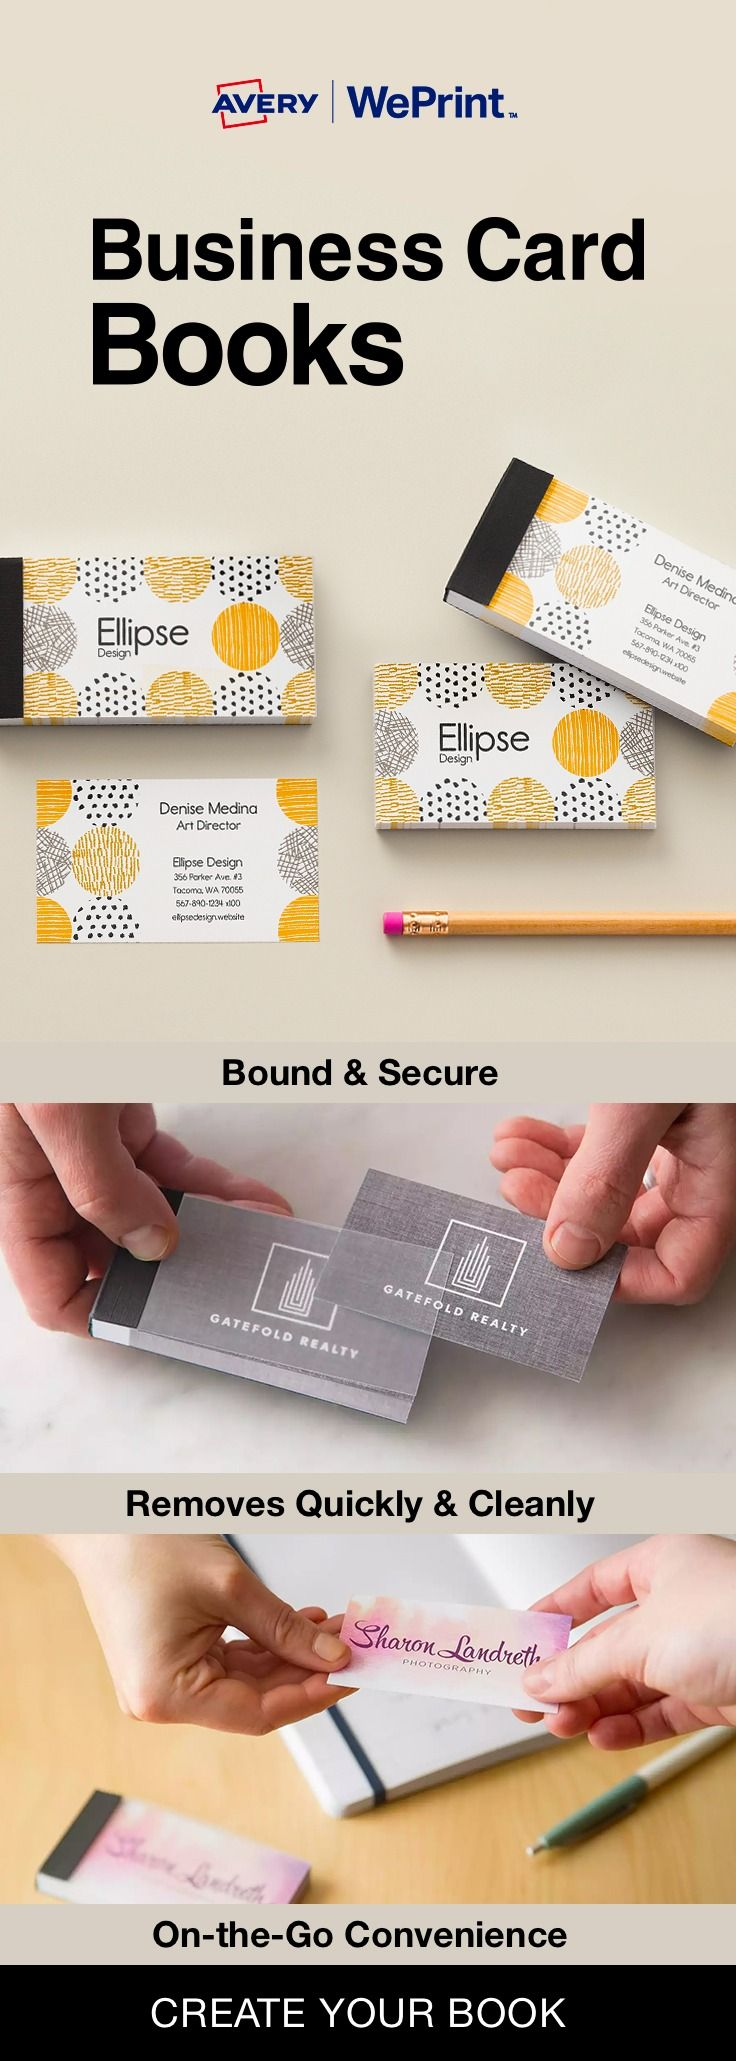 Make Connections Make Deals Make It Happen With 5 Off Your 20 Business Card Order From Avery Wepri Business Cards Business Card Books Custom Business Cards